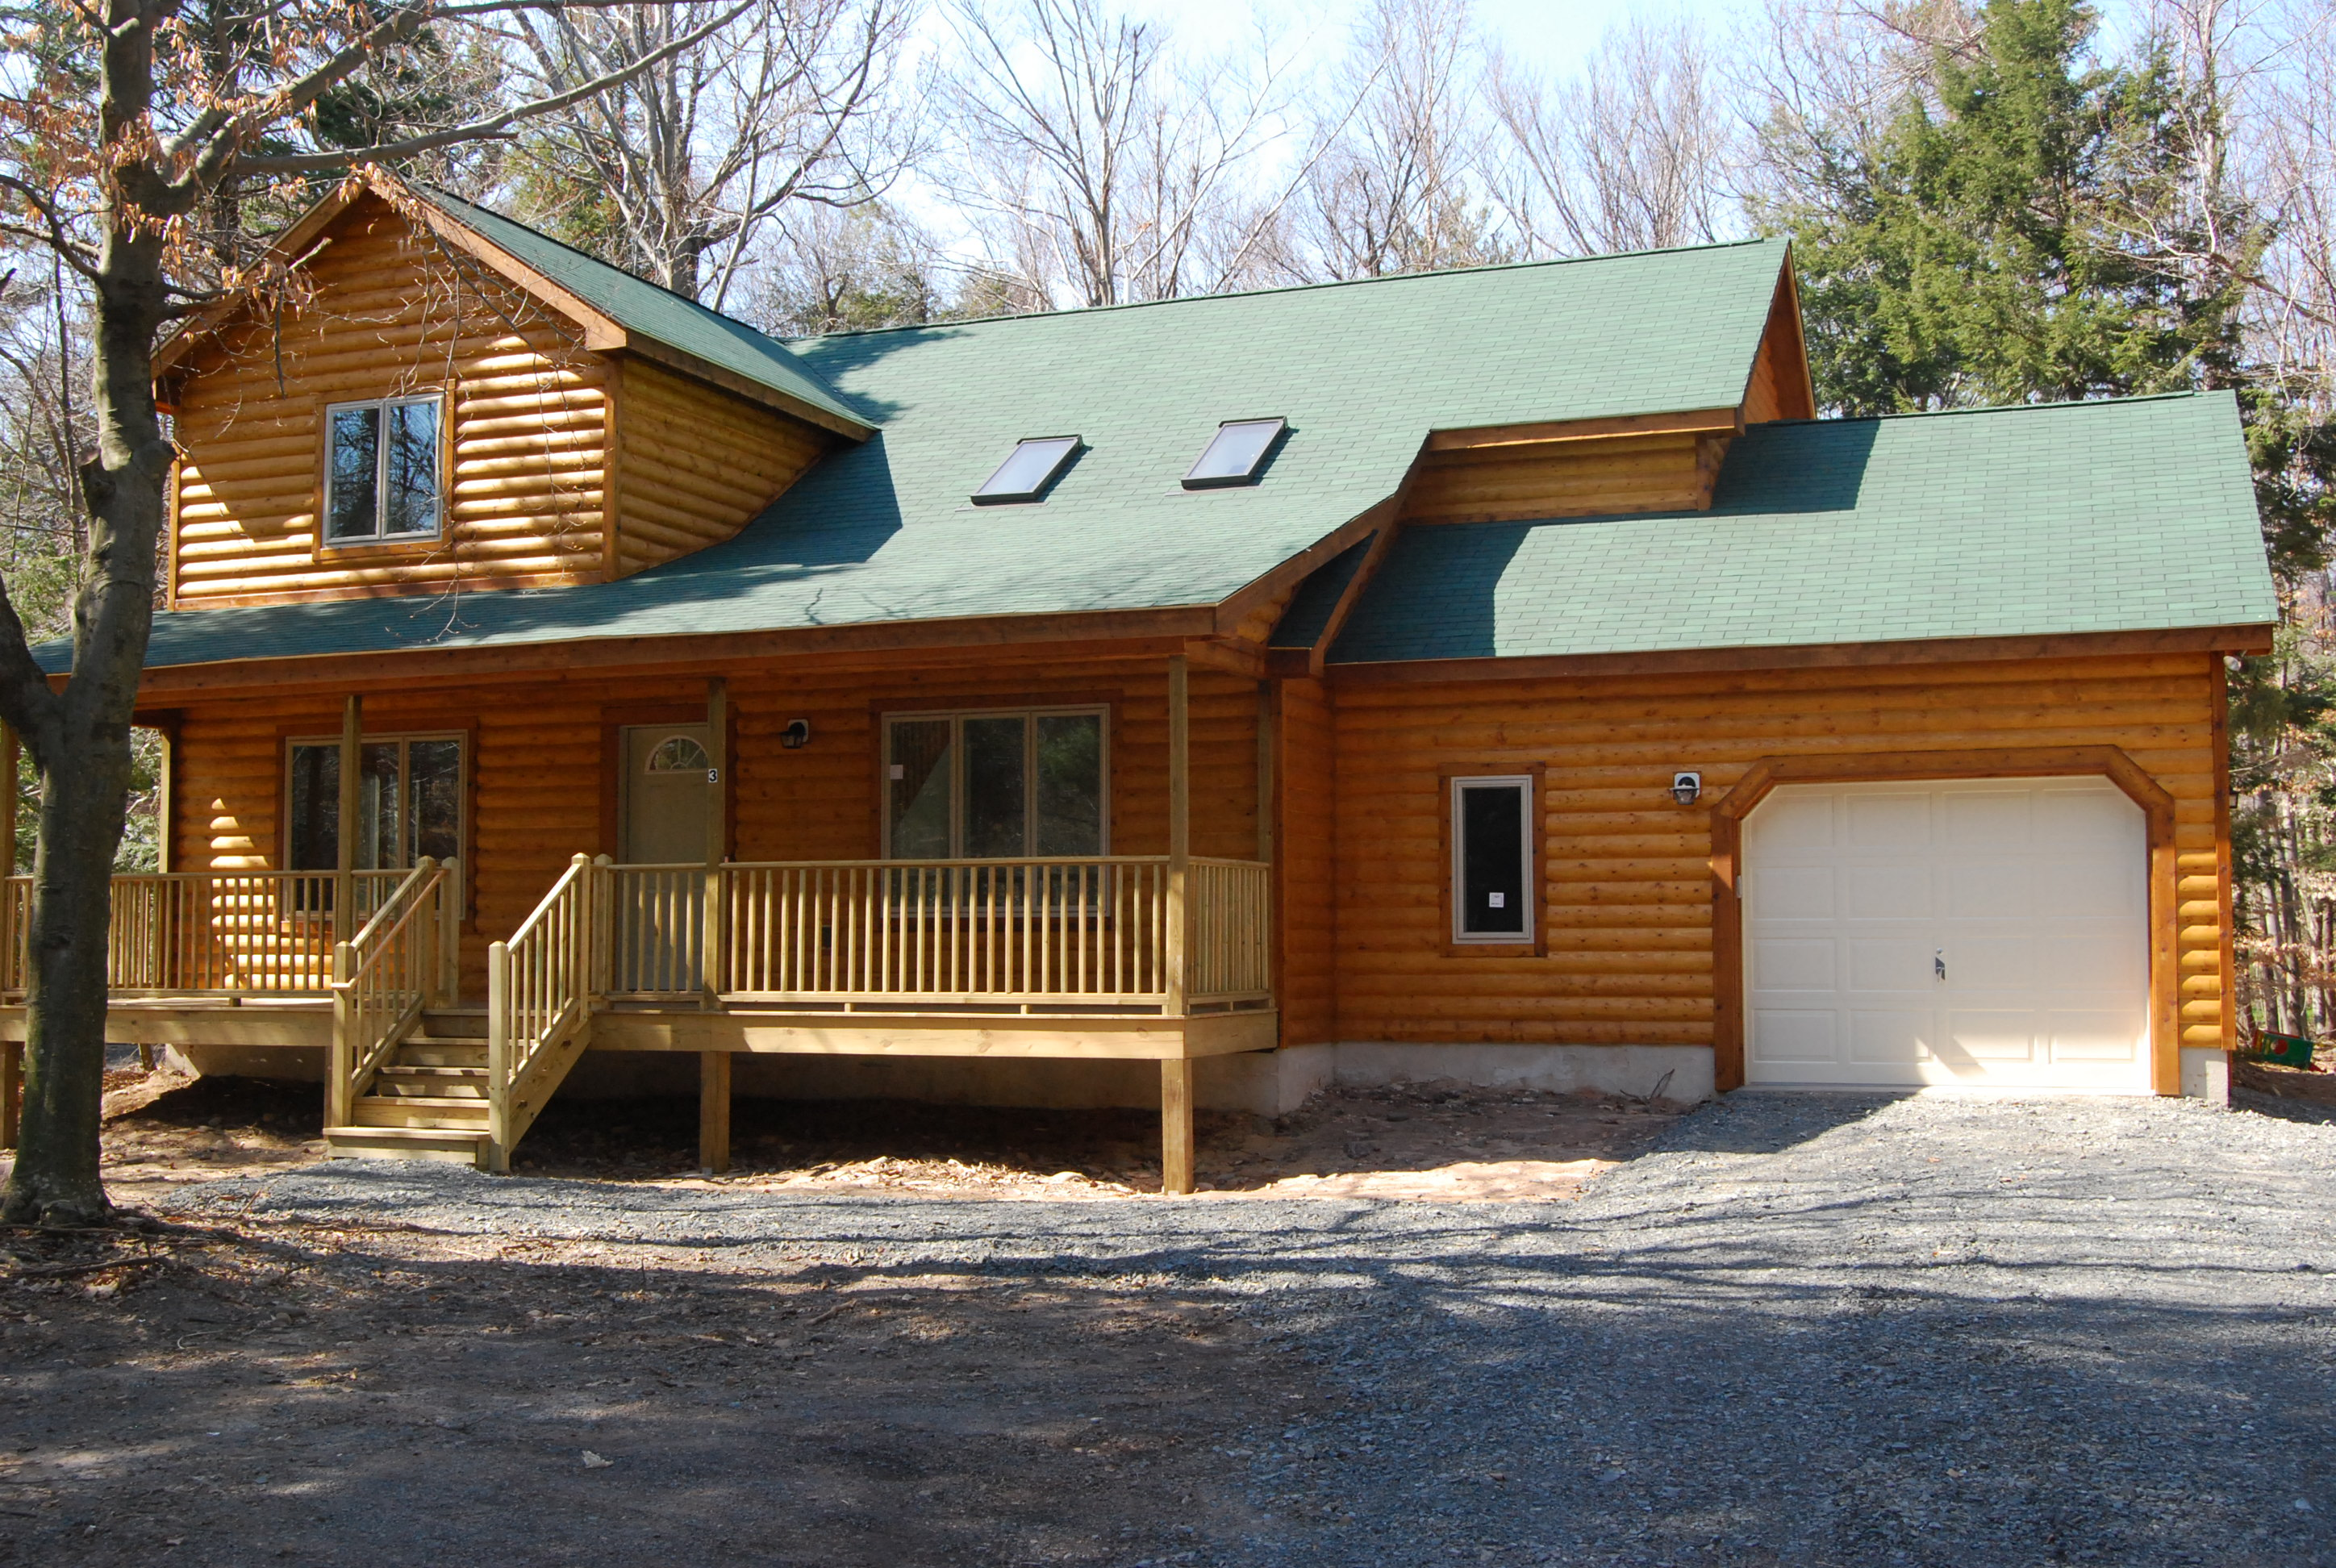 Amazing Log Cabin Home in the Poconos!